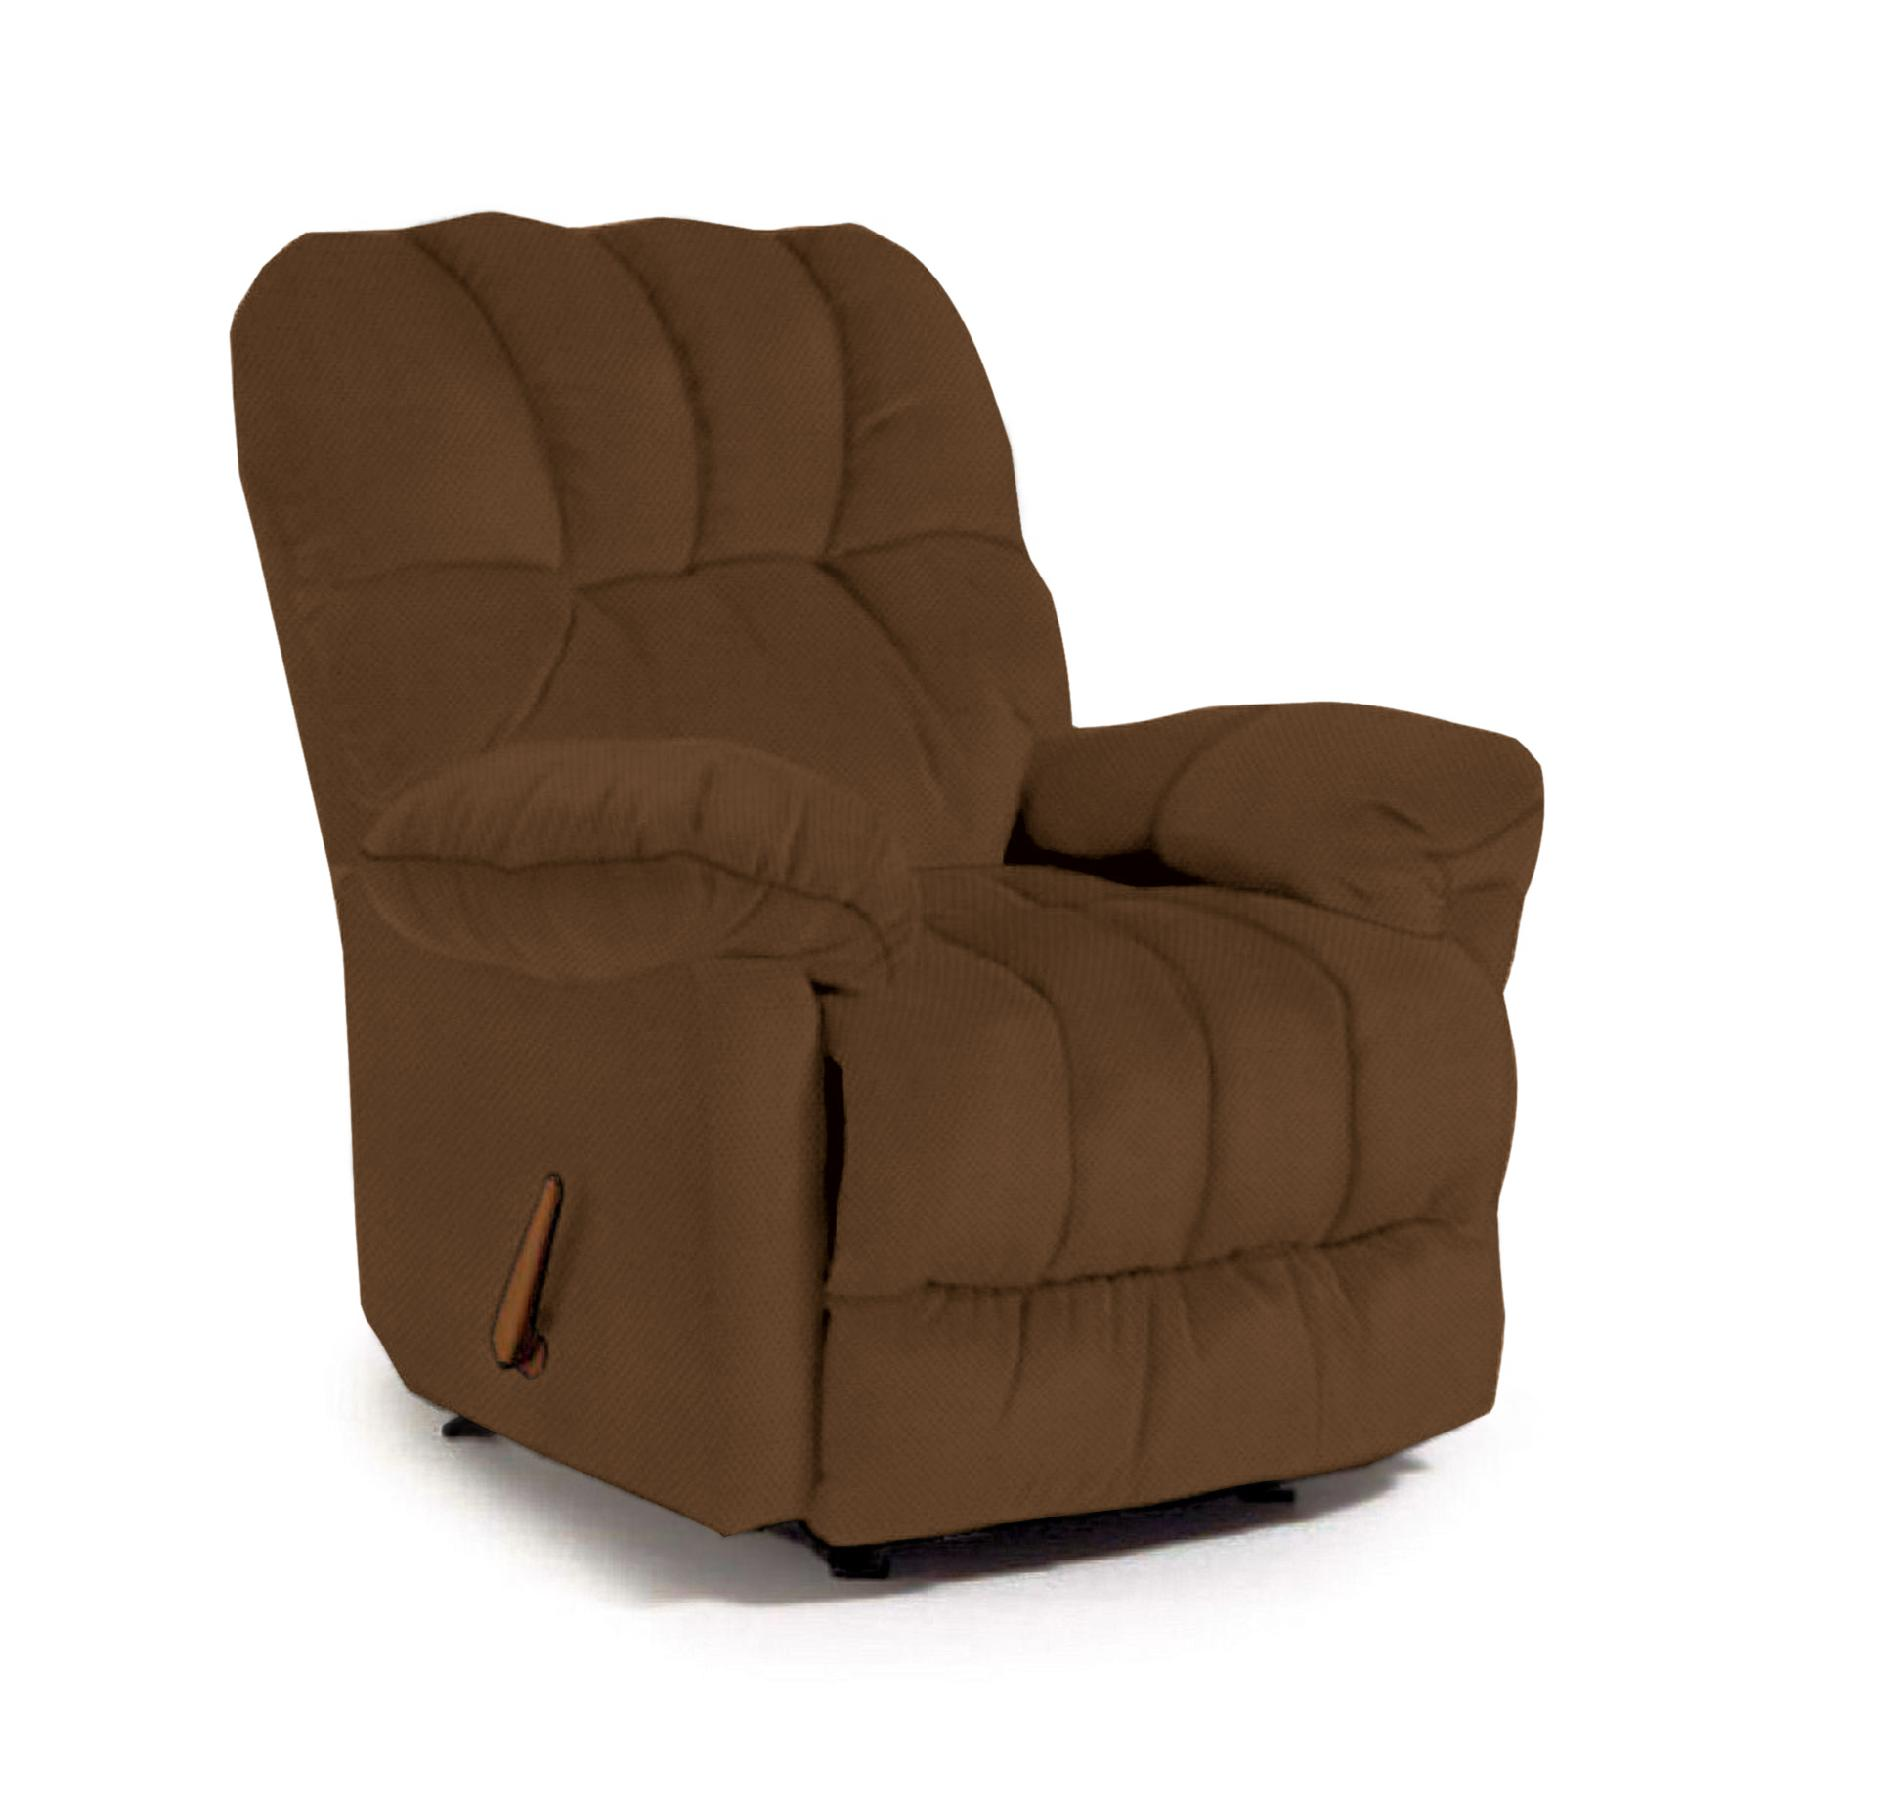 sears recliner chairs best camping chair ever home furnishings weston rocker